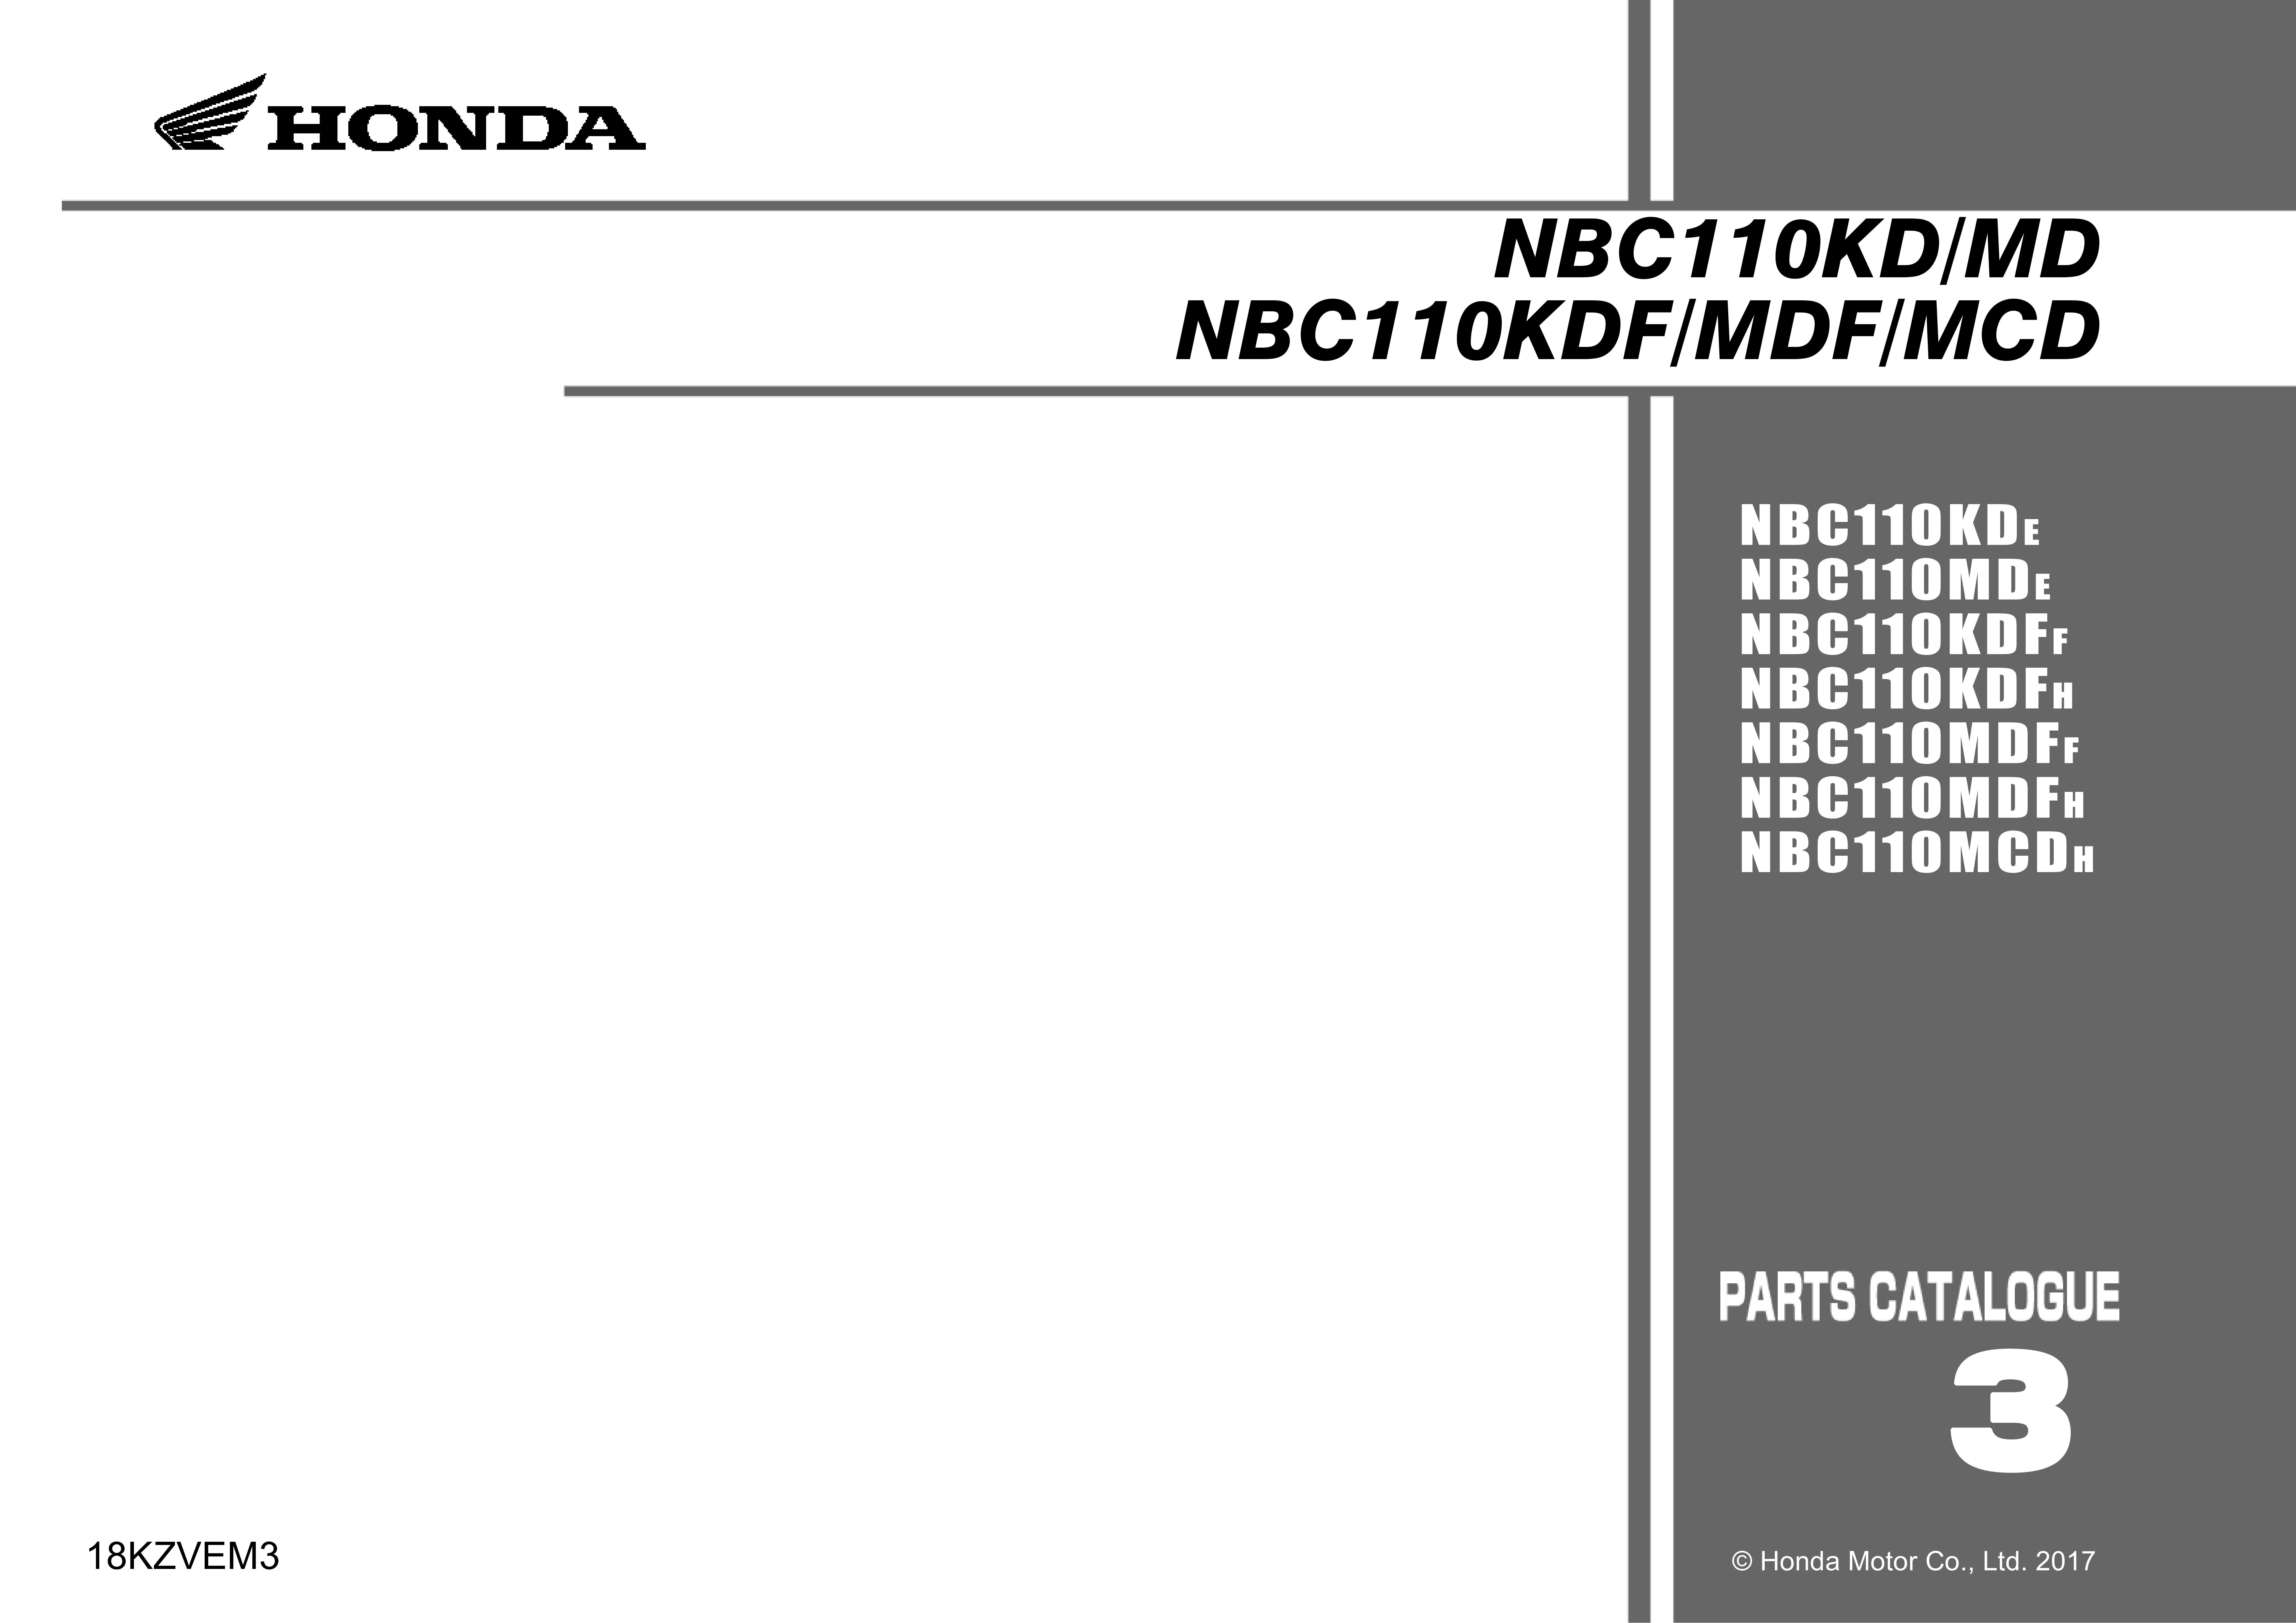 Parts List for Honda NBC110MD Dream 110 (2017)